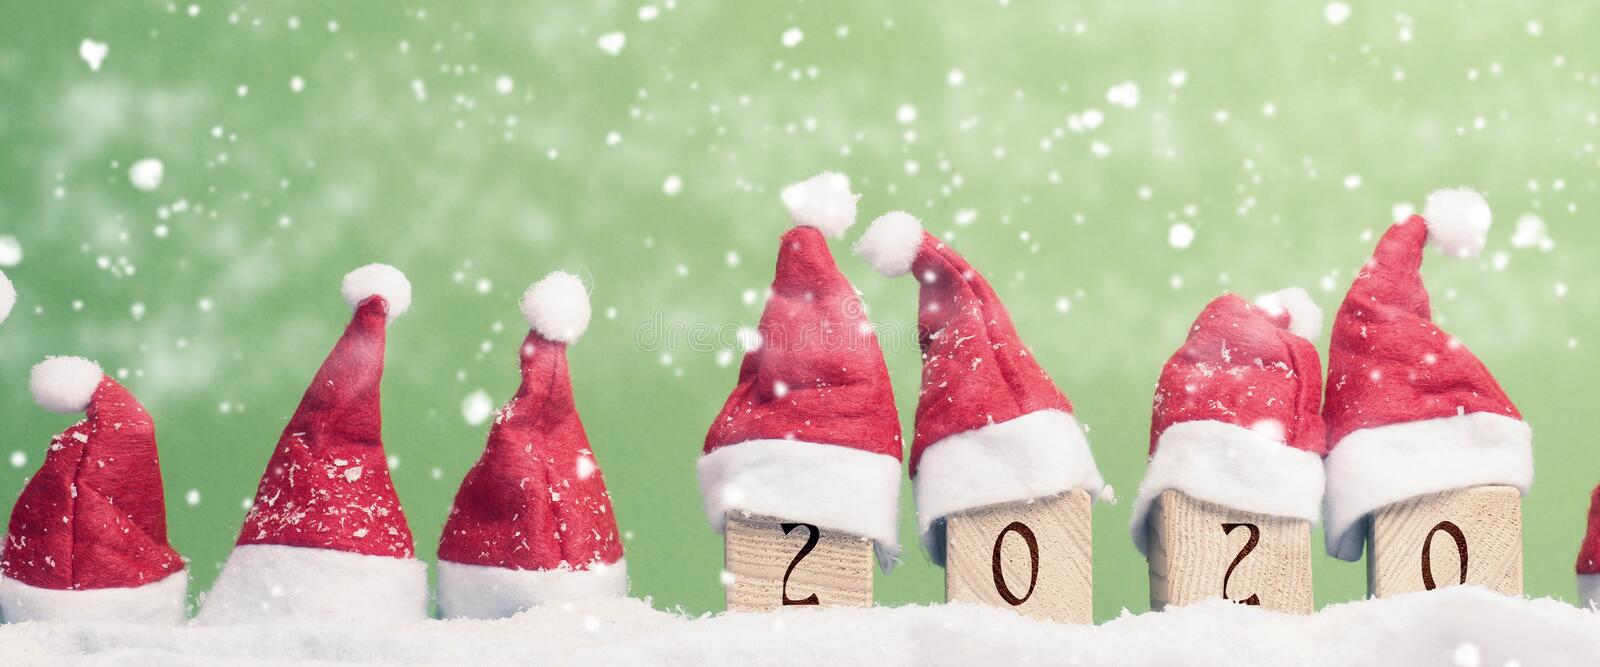 Many hats of Santa in a row with snow. Christmas background, panoramic view royalty free stock photography